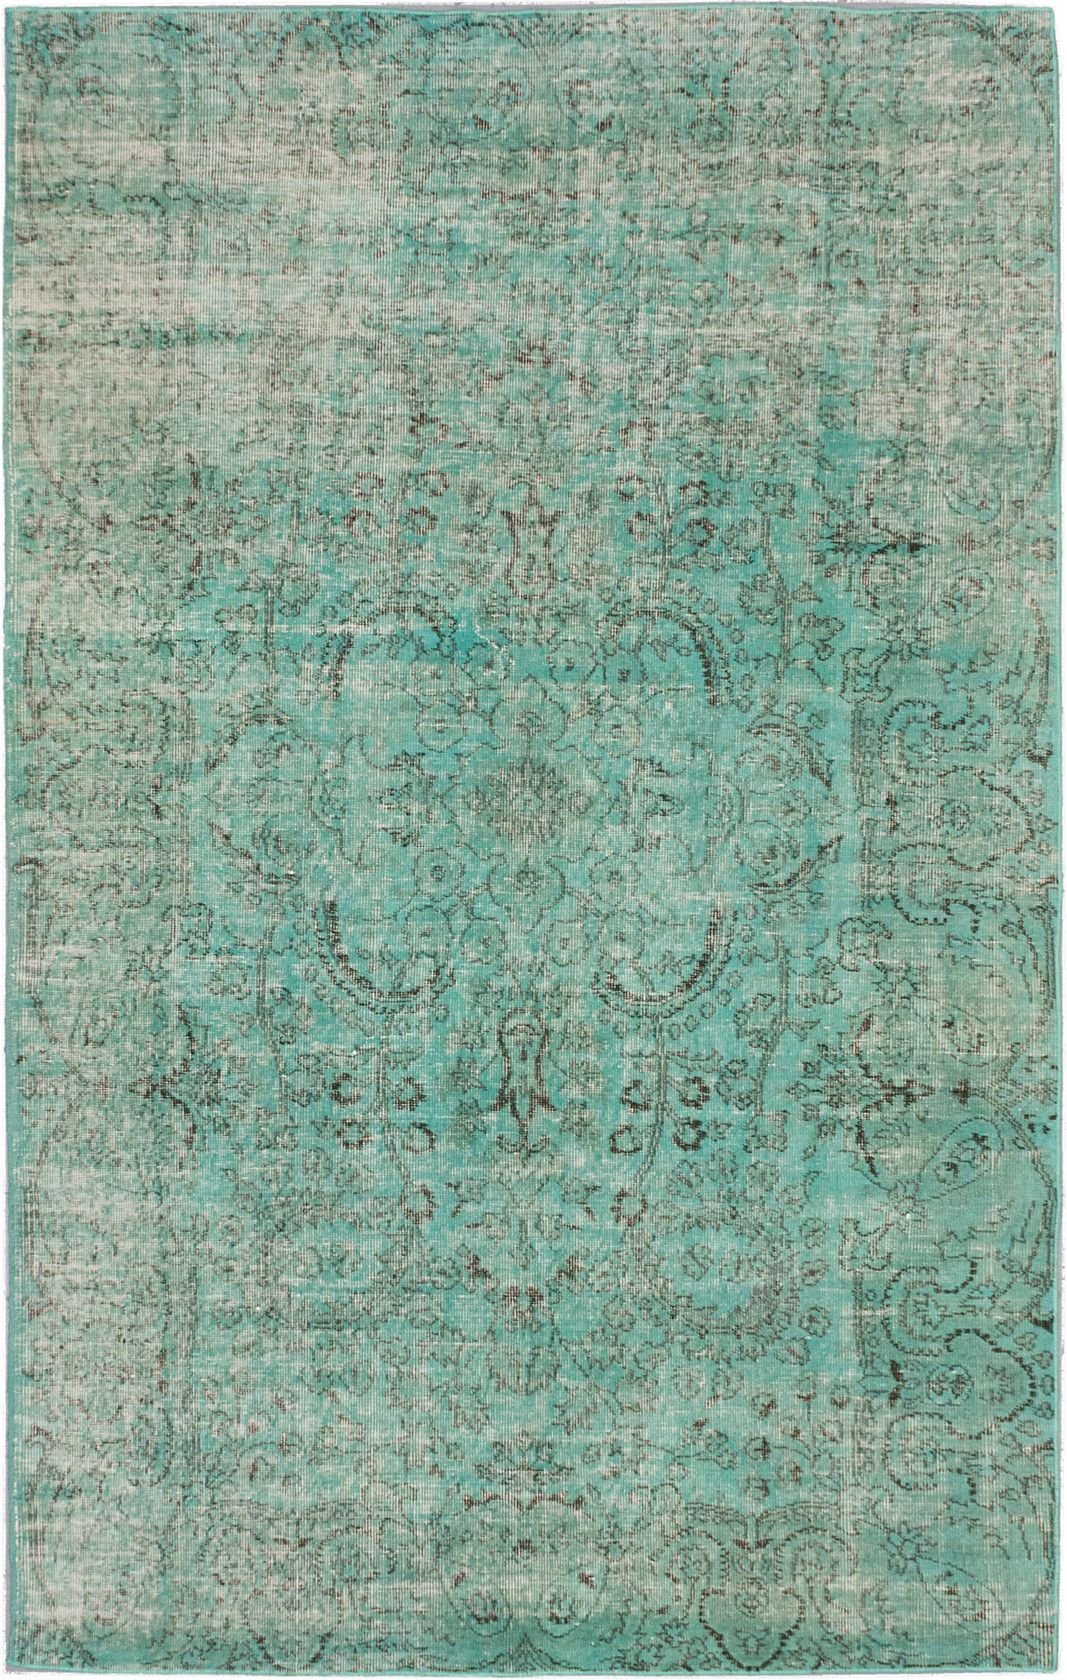 Design Overdyed Rugs 52 x 83 turquoise blue green turkish overdyed rug snug as a from indigo and lavender